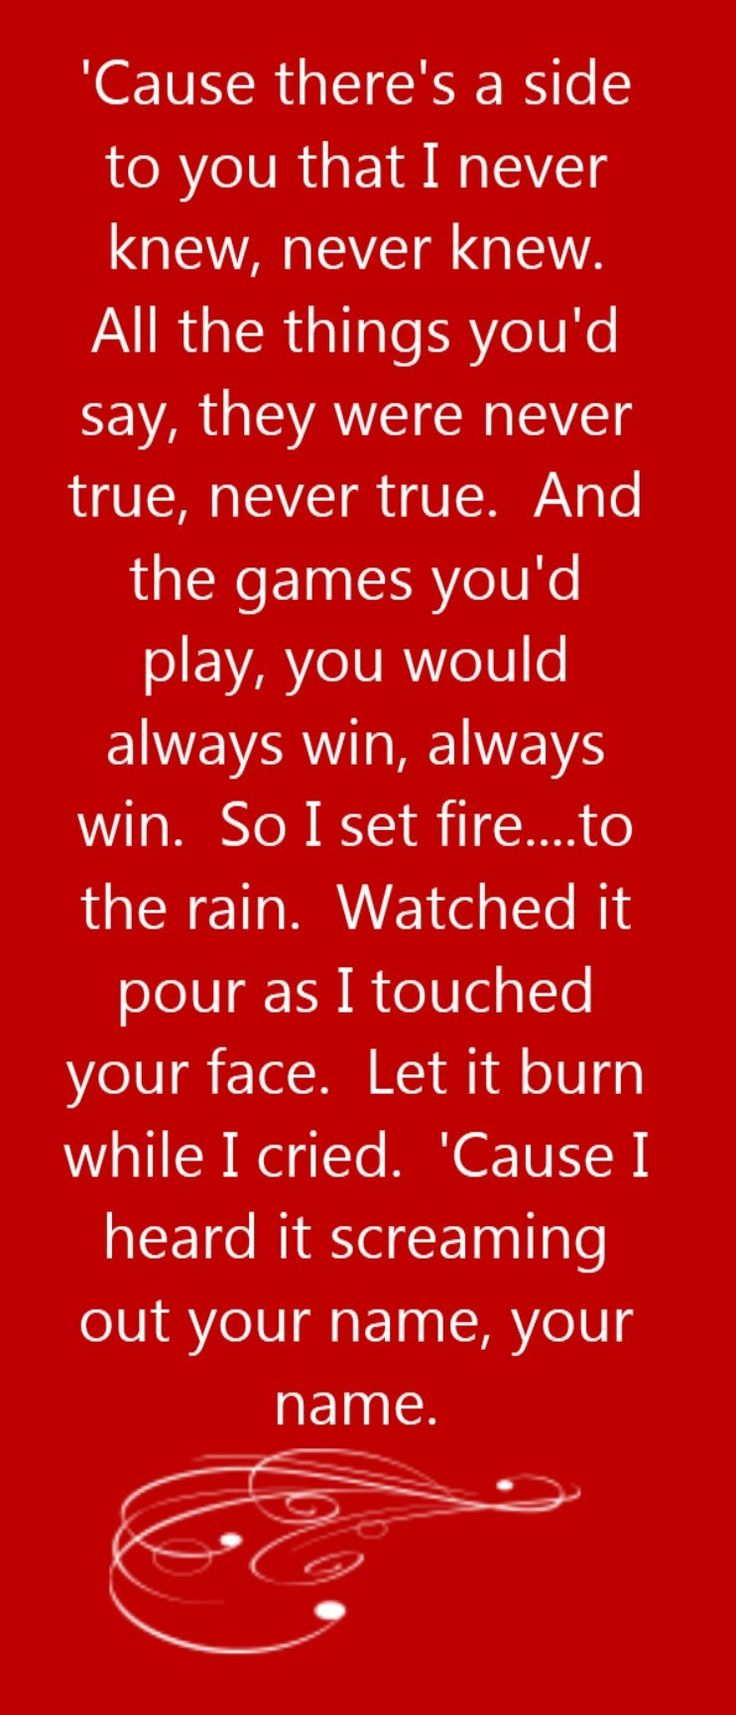 Adele - Set Fire To The Rain - song lyrics, song quotes, songs, music lyrics, music quotes,